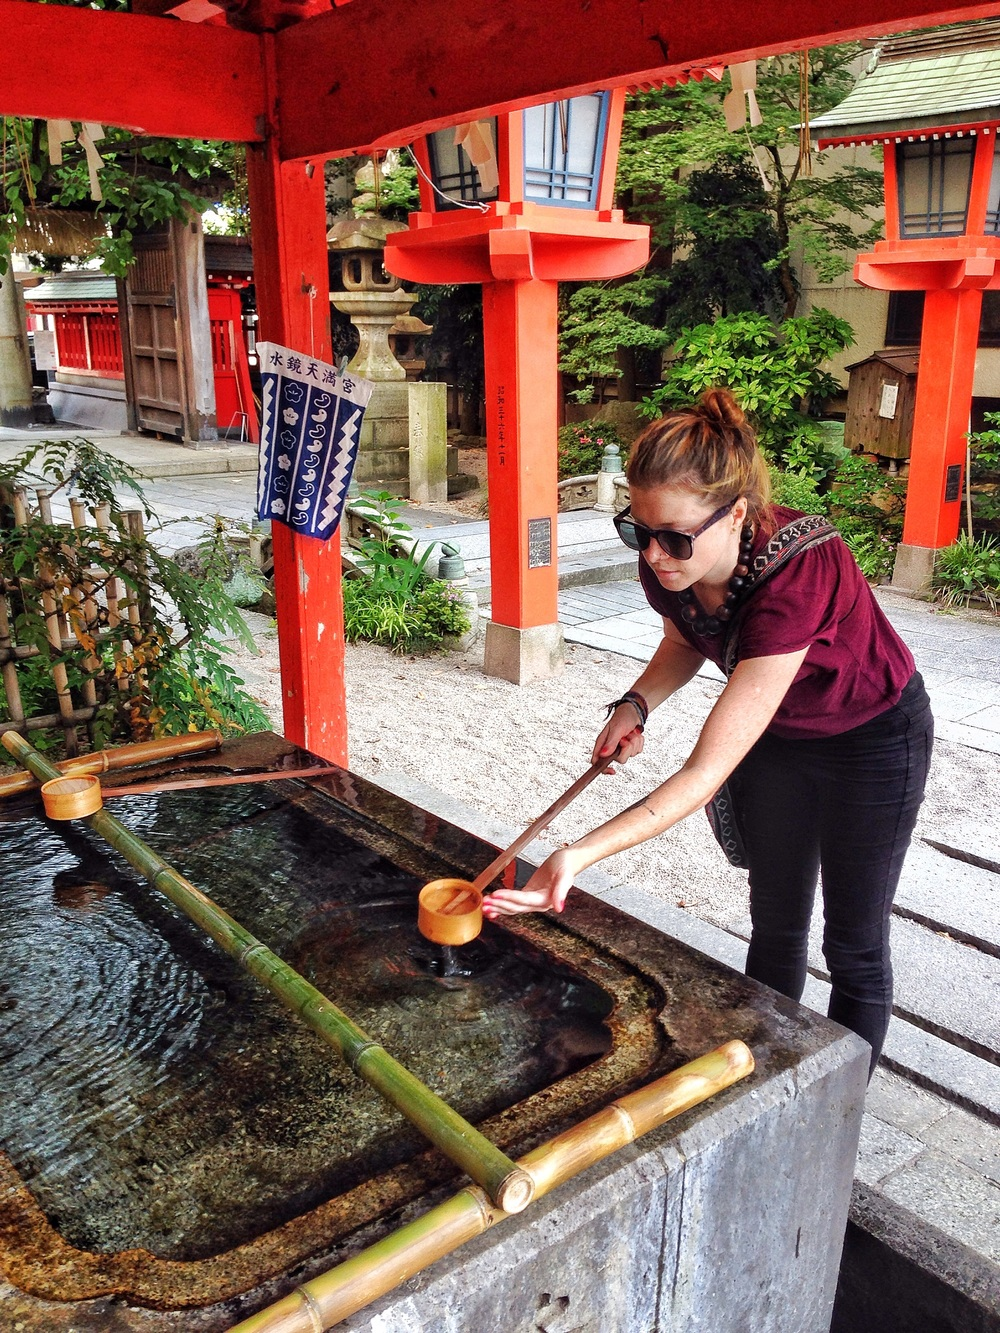 Cleansing my hands before entering the shrine.